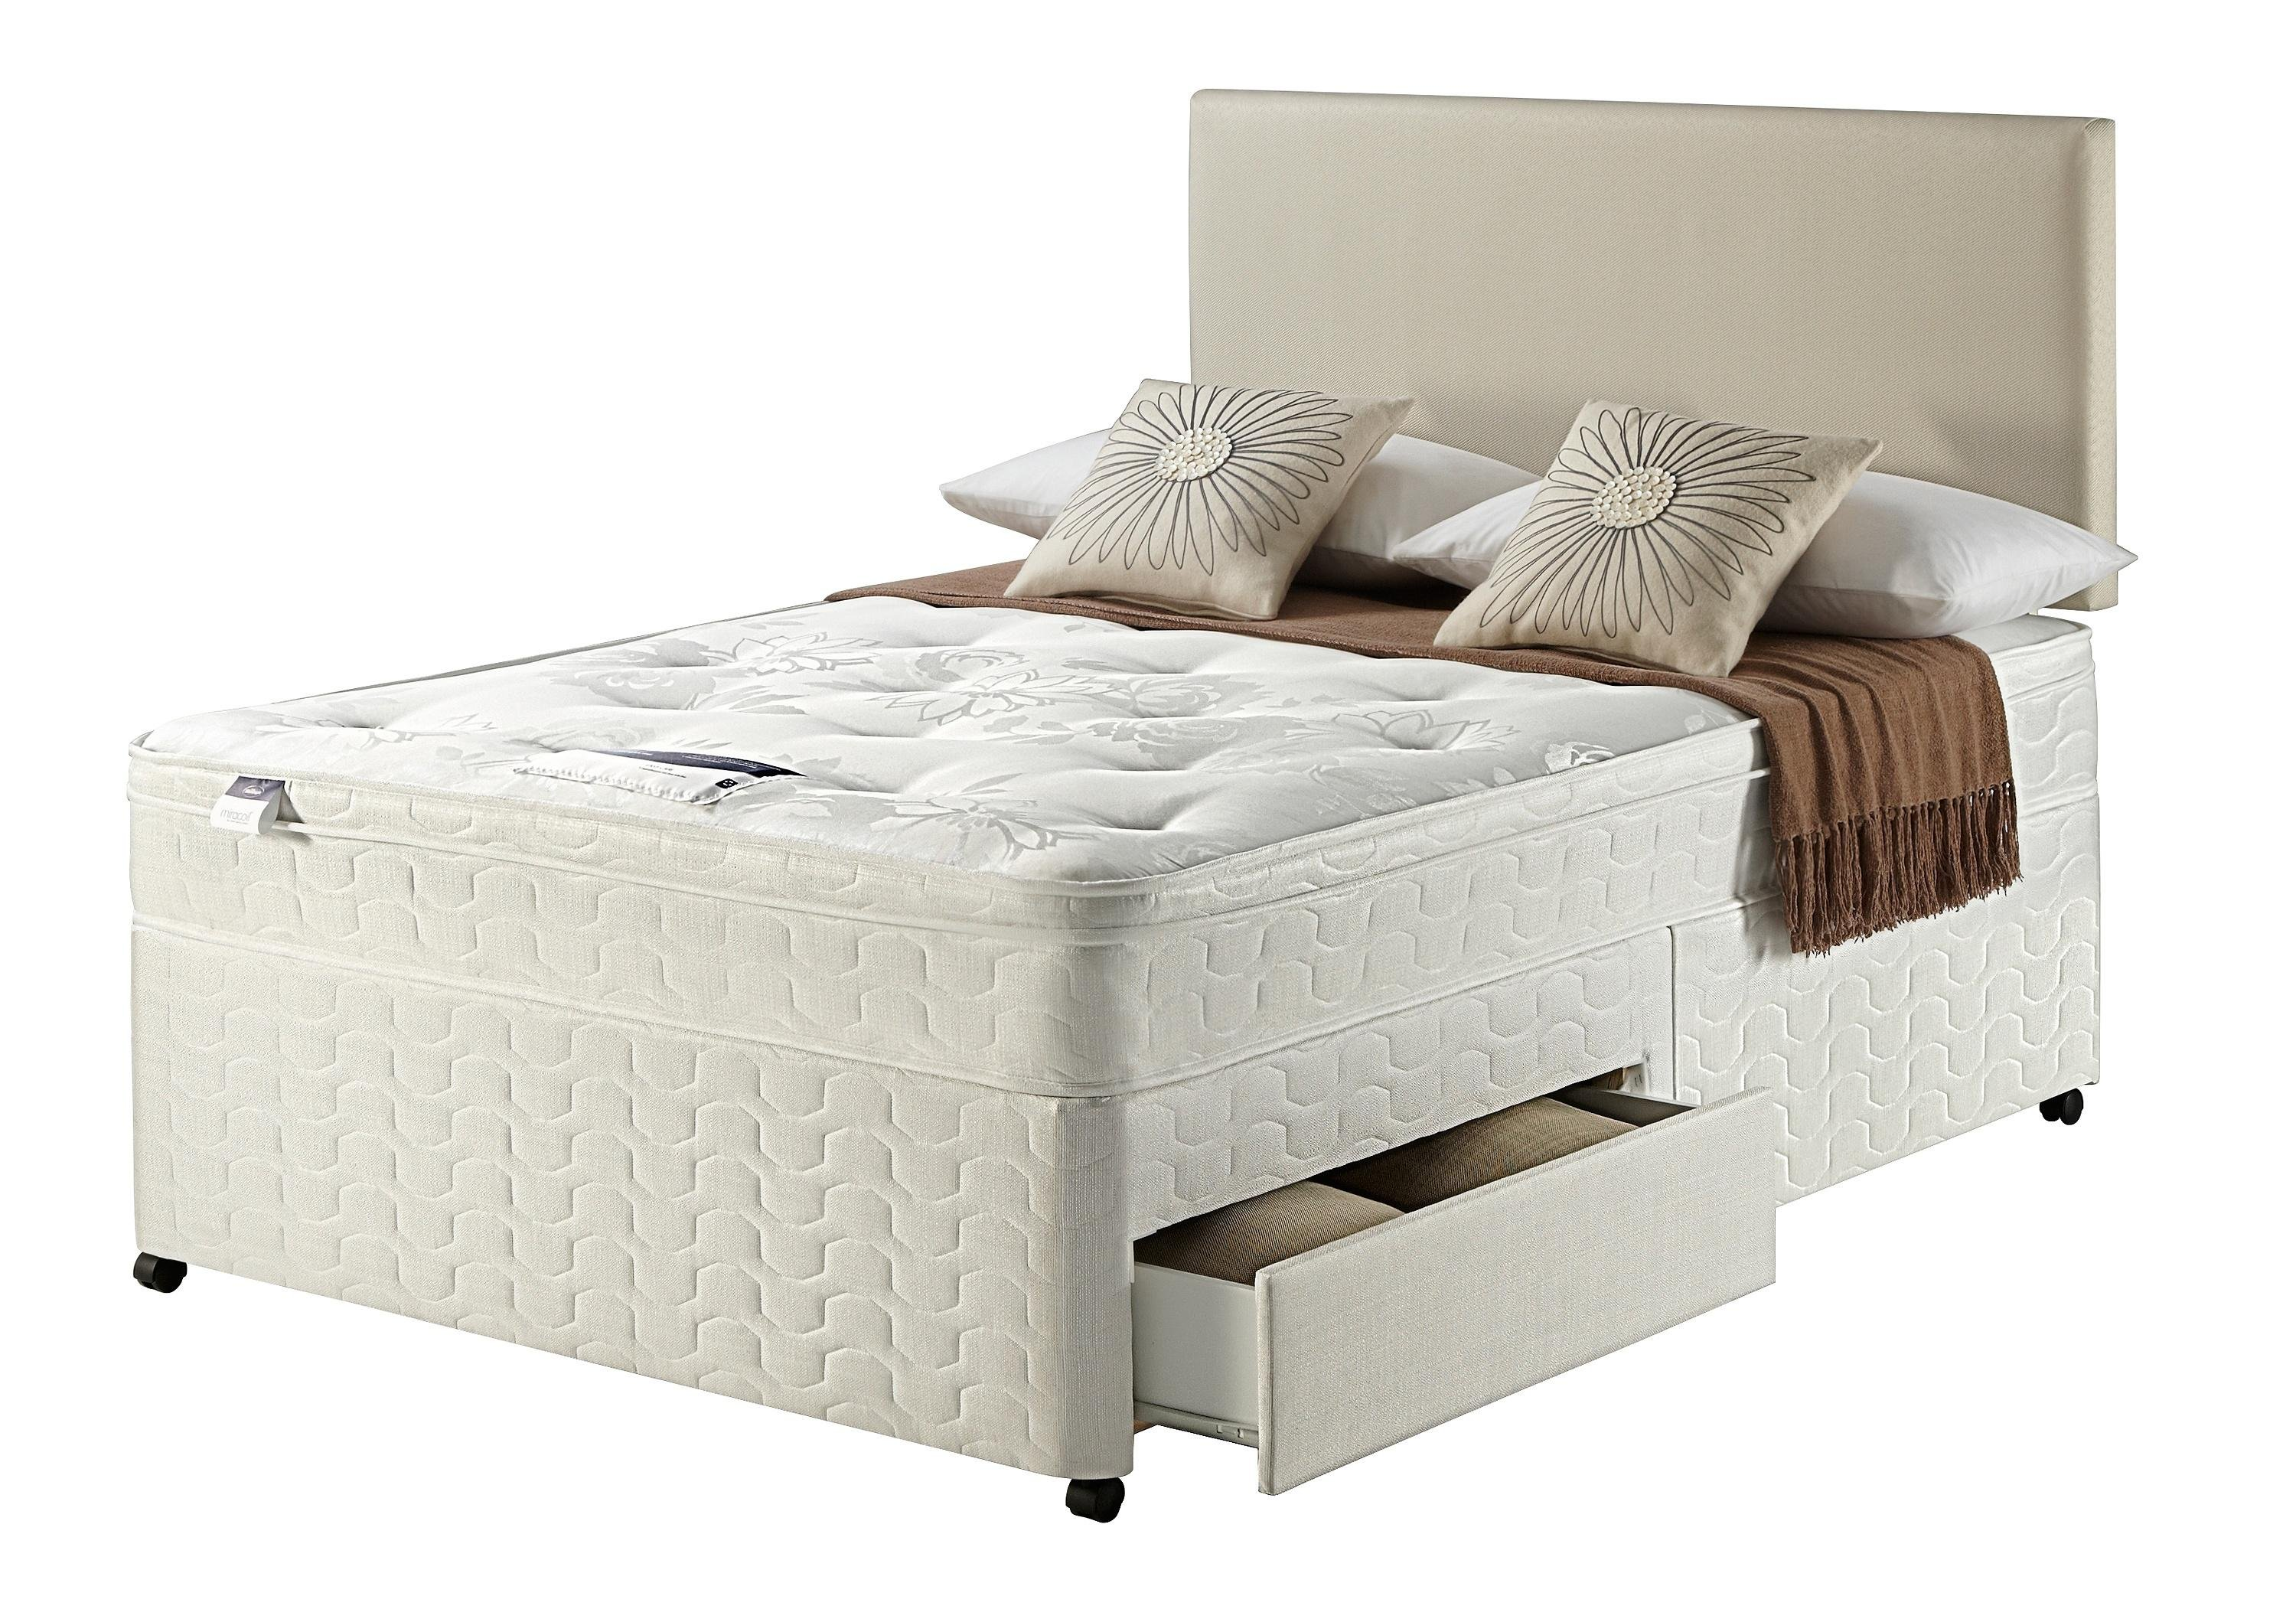 Silentnight miracoil travis ortho double 2 drw divan bed for Silent night divan beds